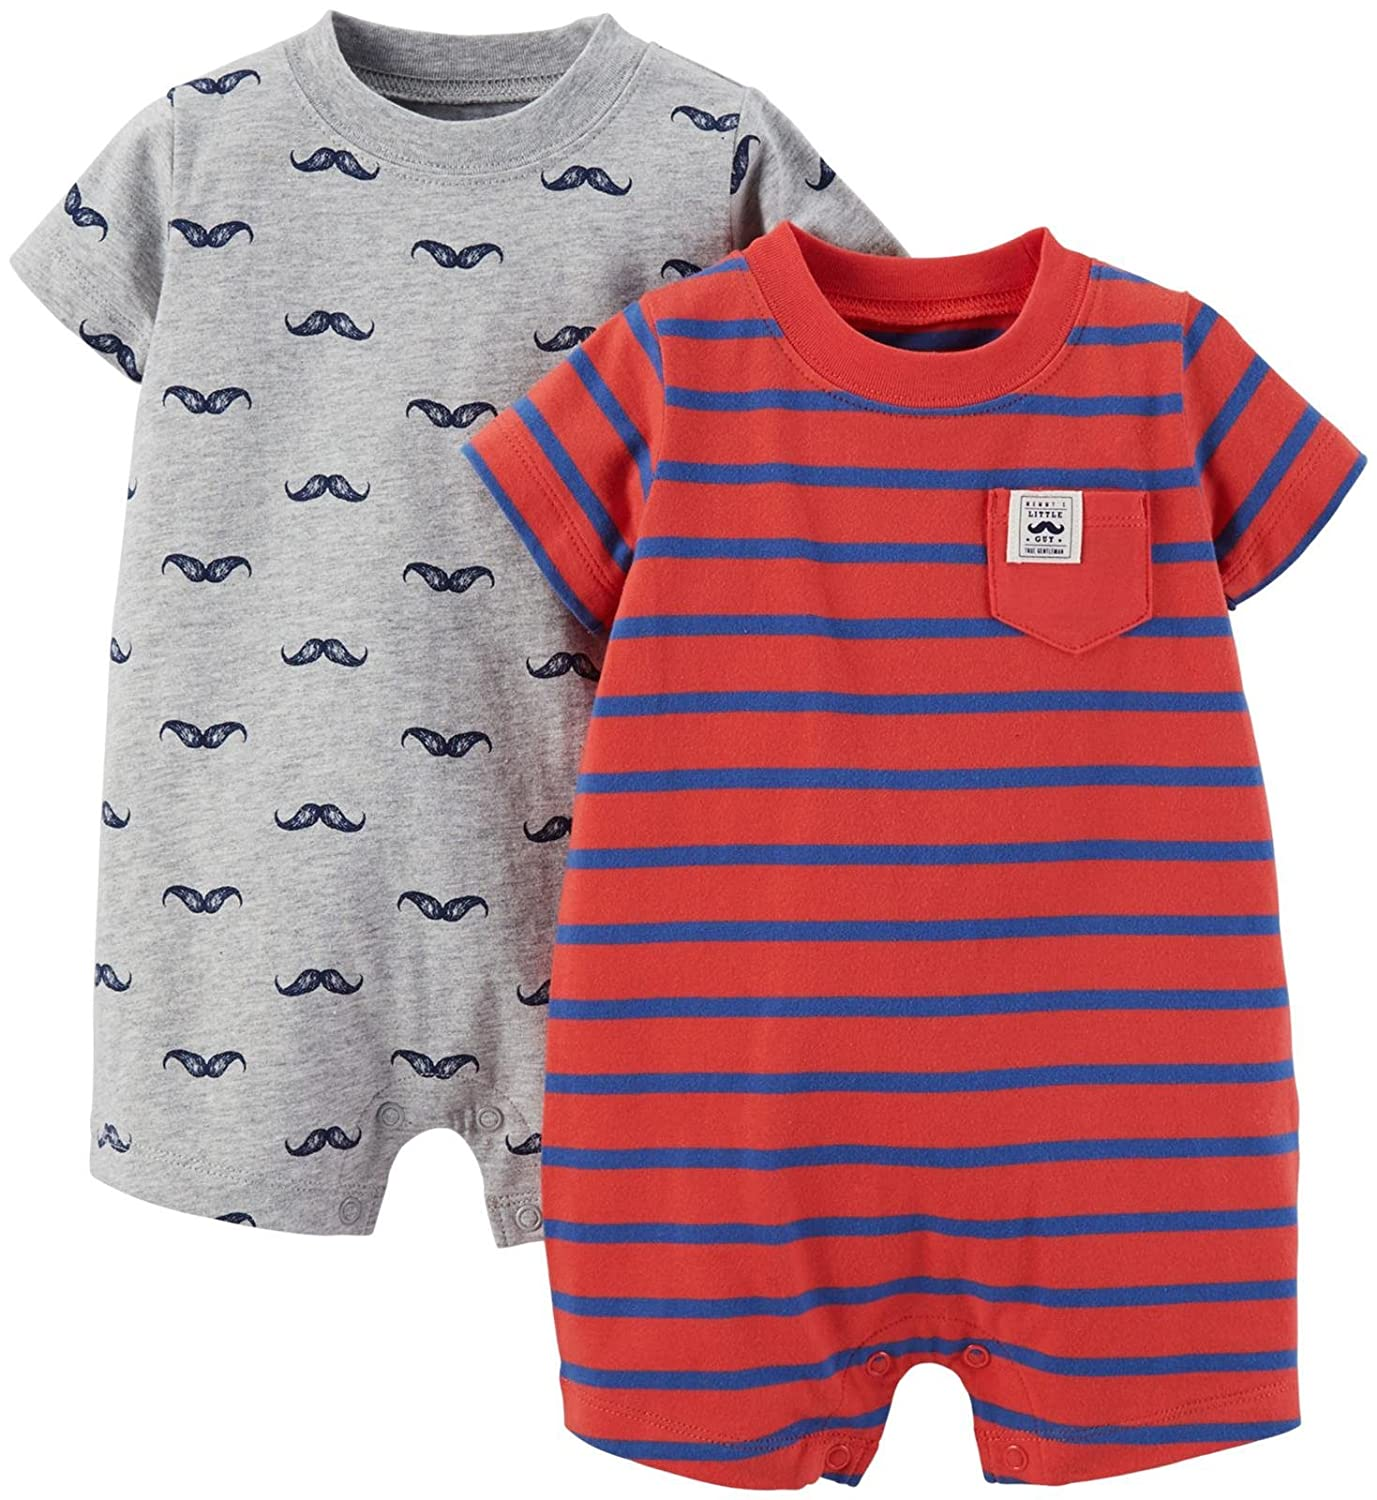 16ec9bce3 Amazon.com  Carter s Baby Boys  2 Pack Rompers (Baby)  Clothing